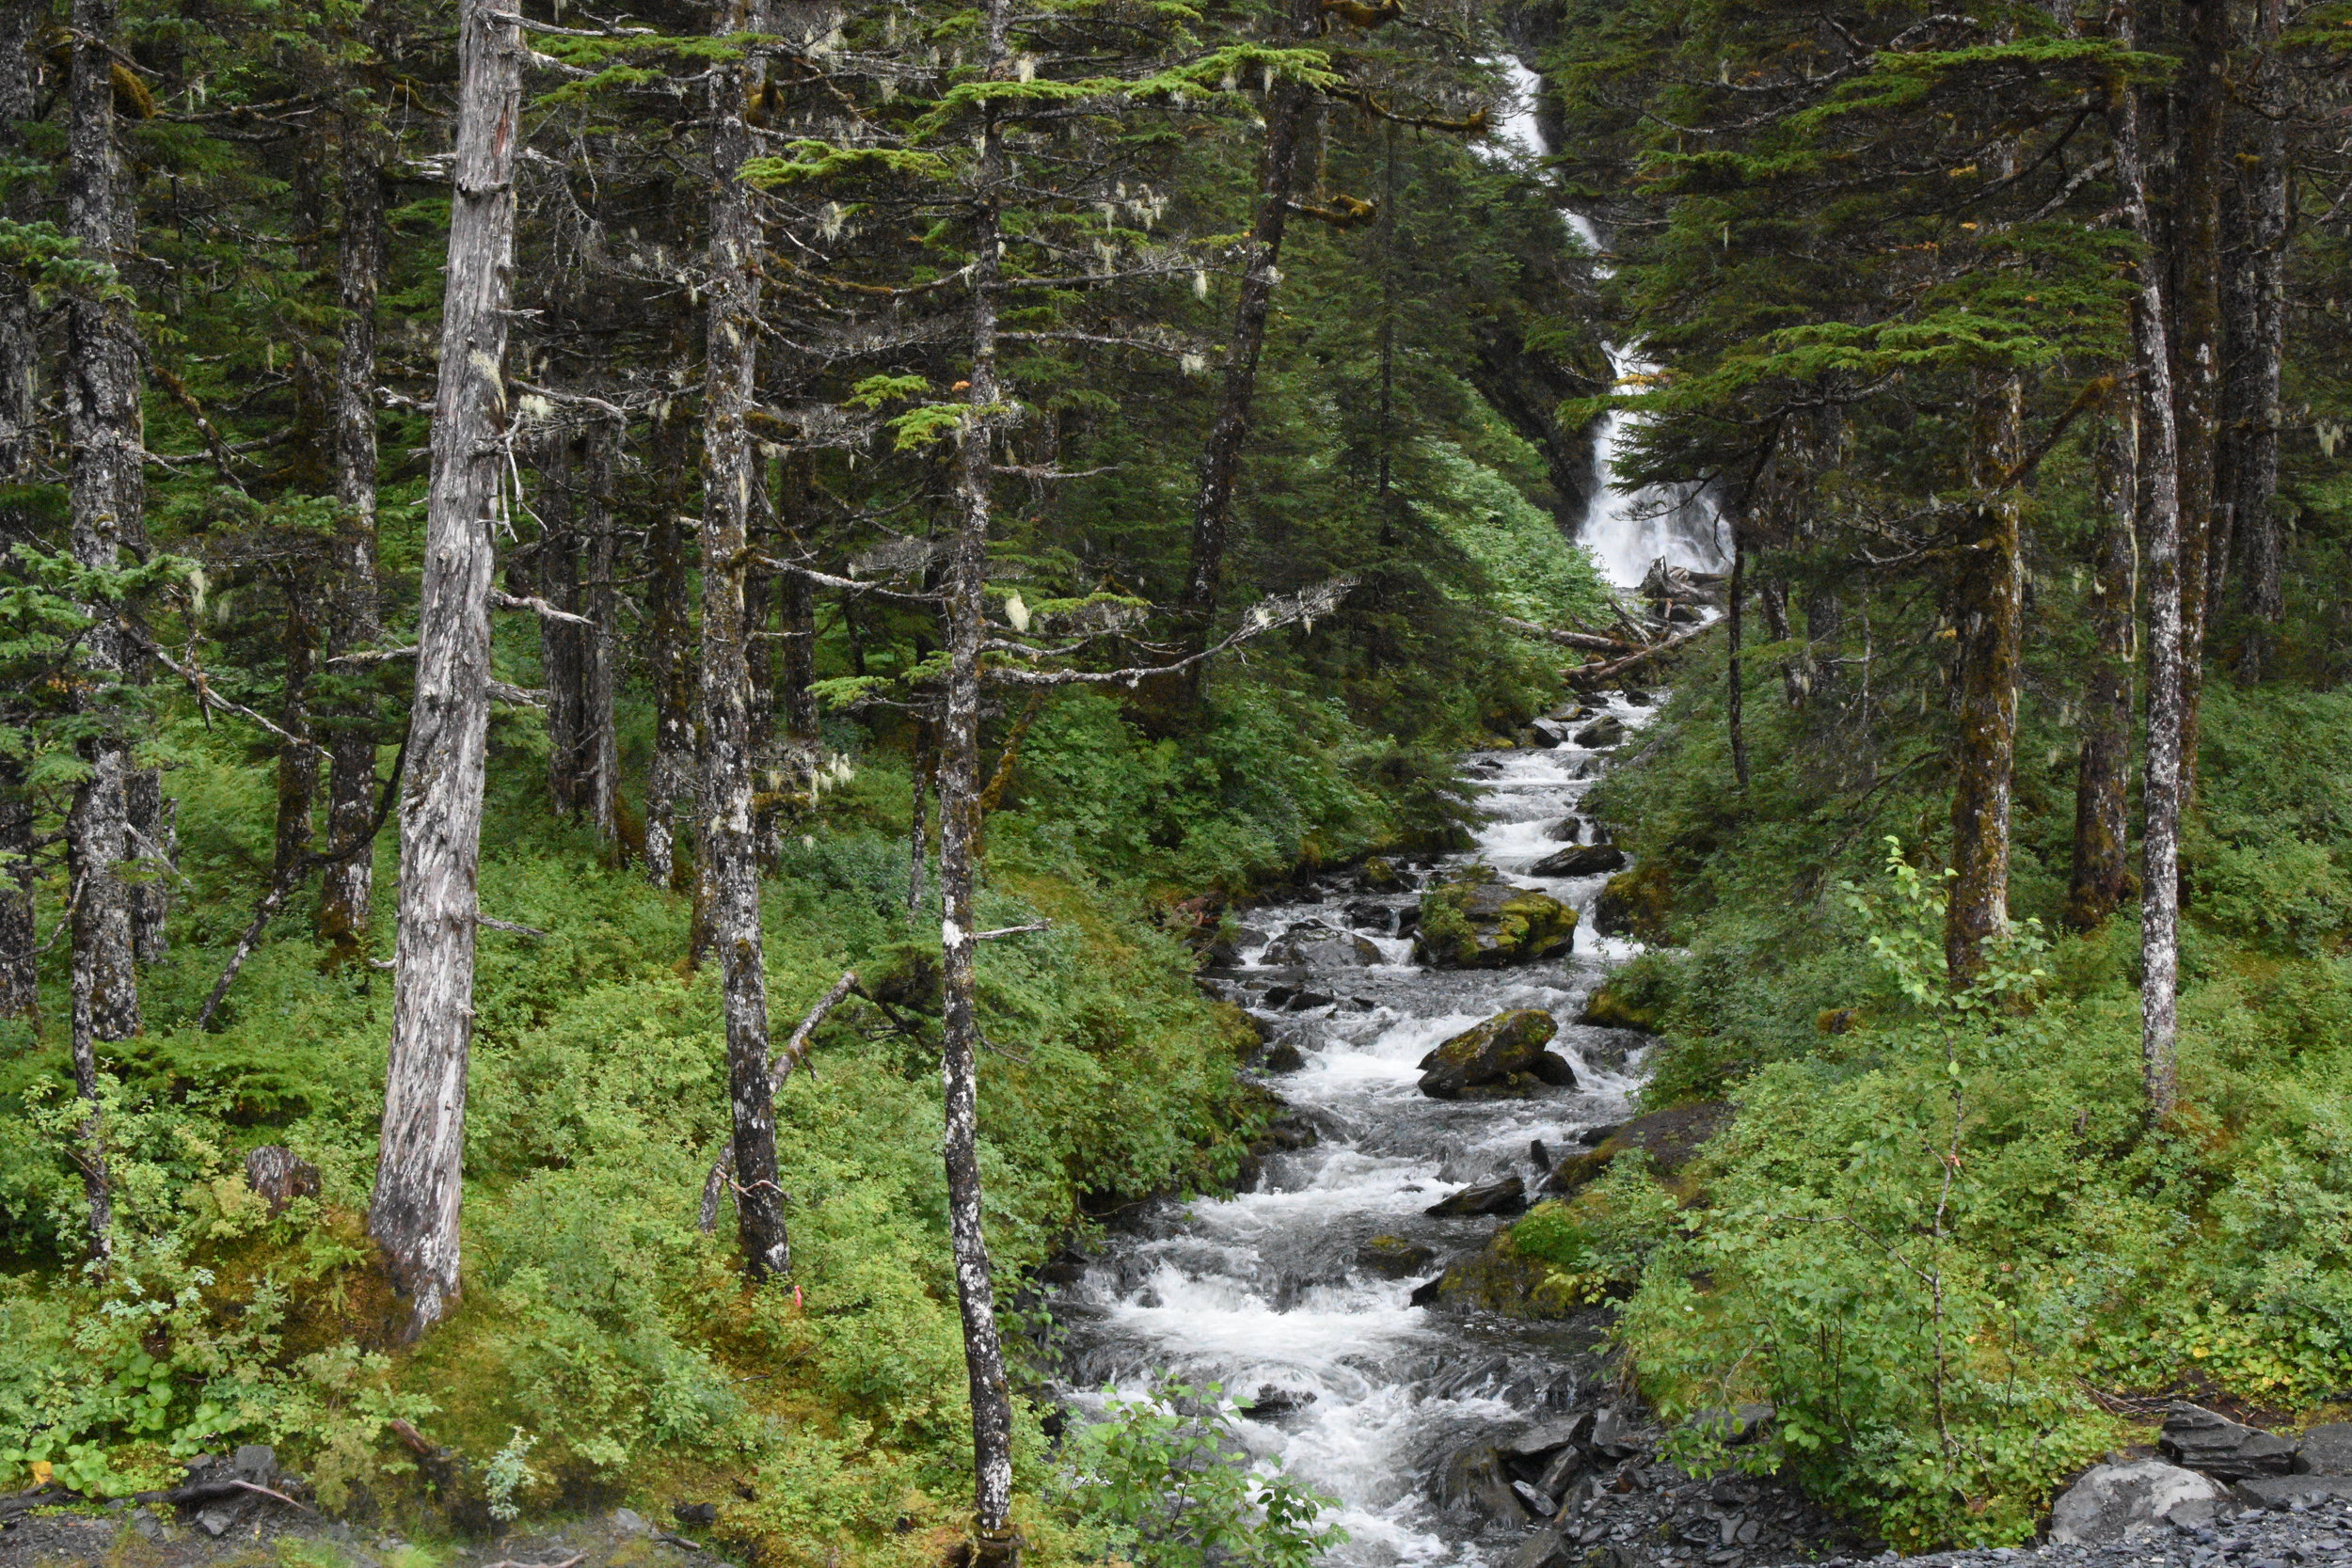 A small mountain stream in Whittier, AK.